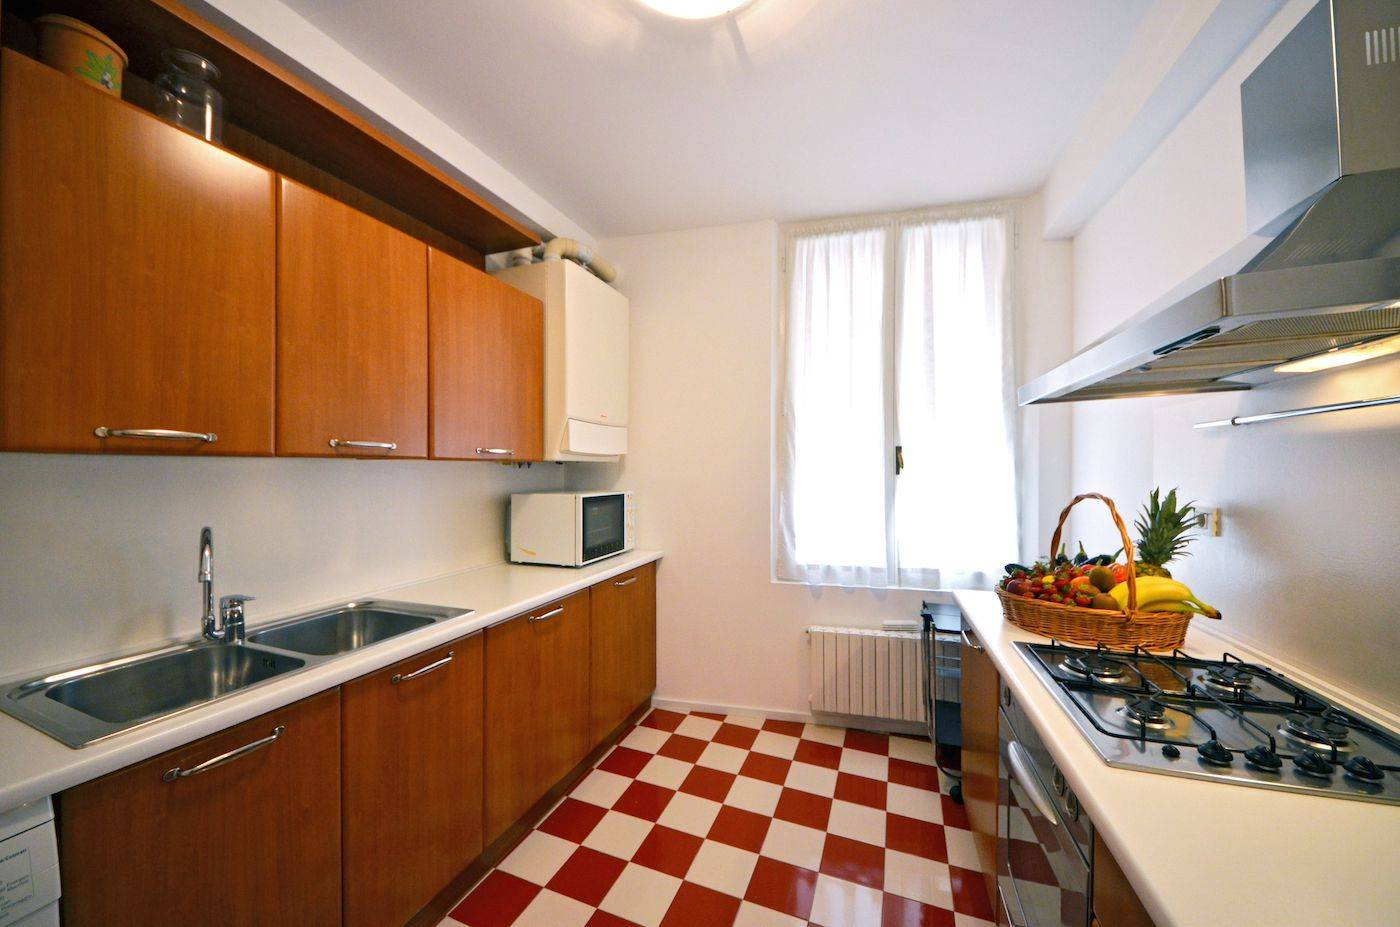 the kitchen has been recently renovated and equipped with new appliances